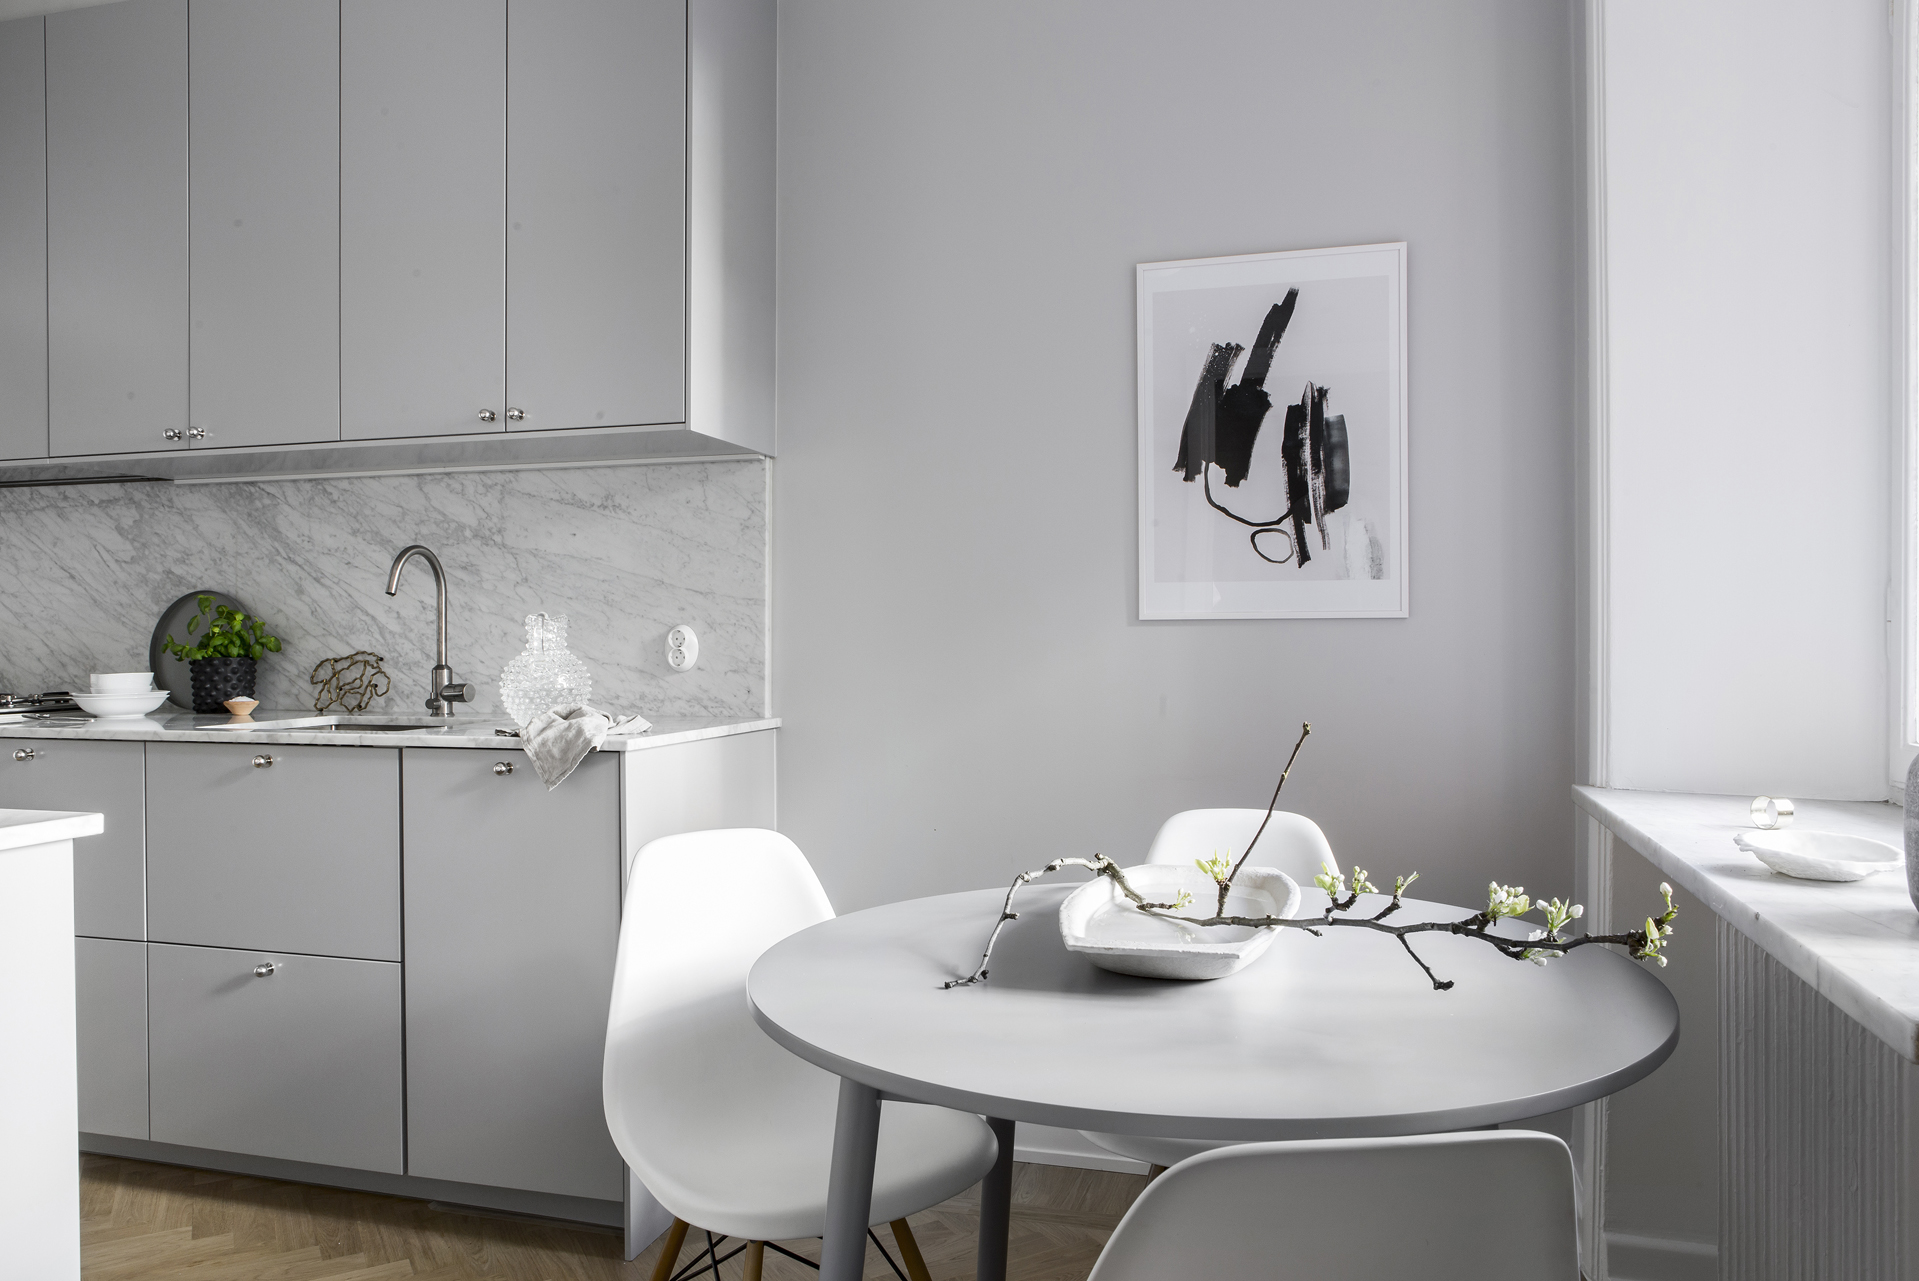 Clean kitchen with a small dining area - COCO LAPINE DESIGNCOCO ...